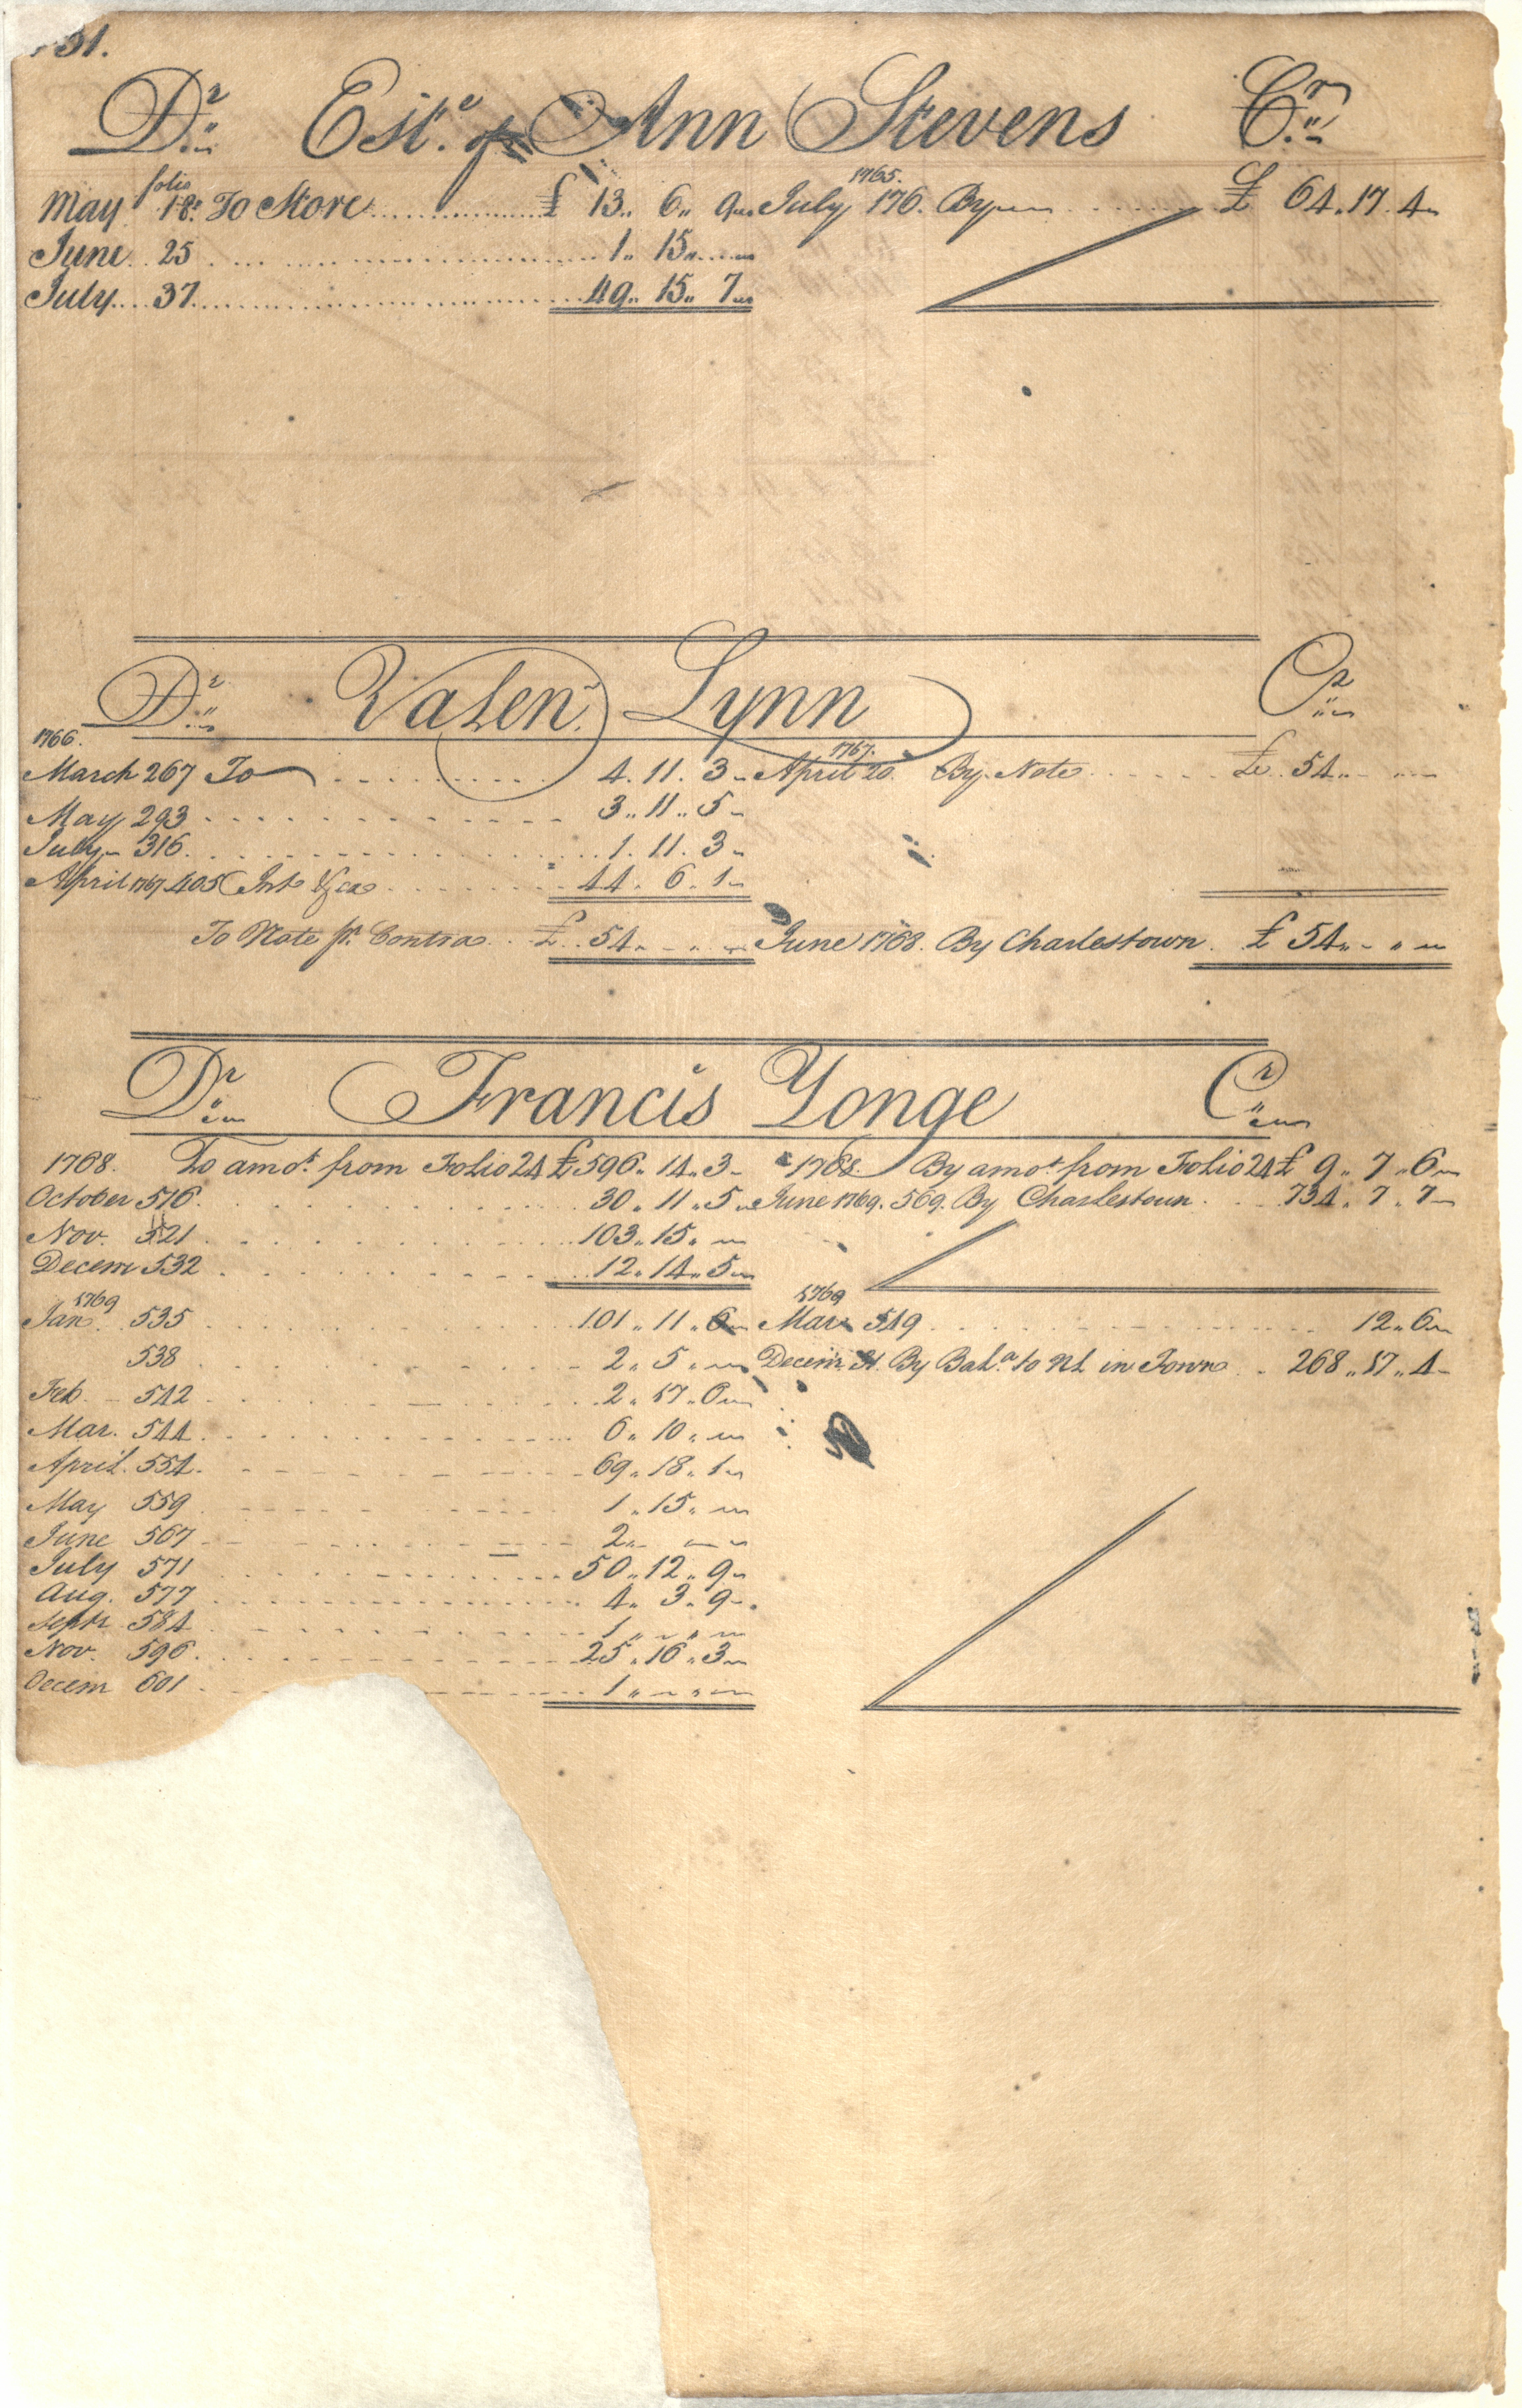 Plowden Weston's Business Ledger, page 131